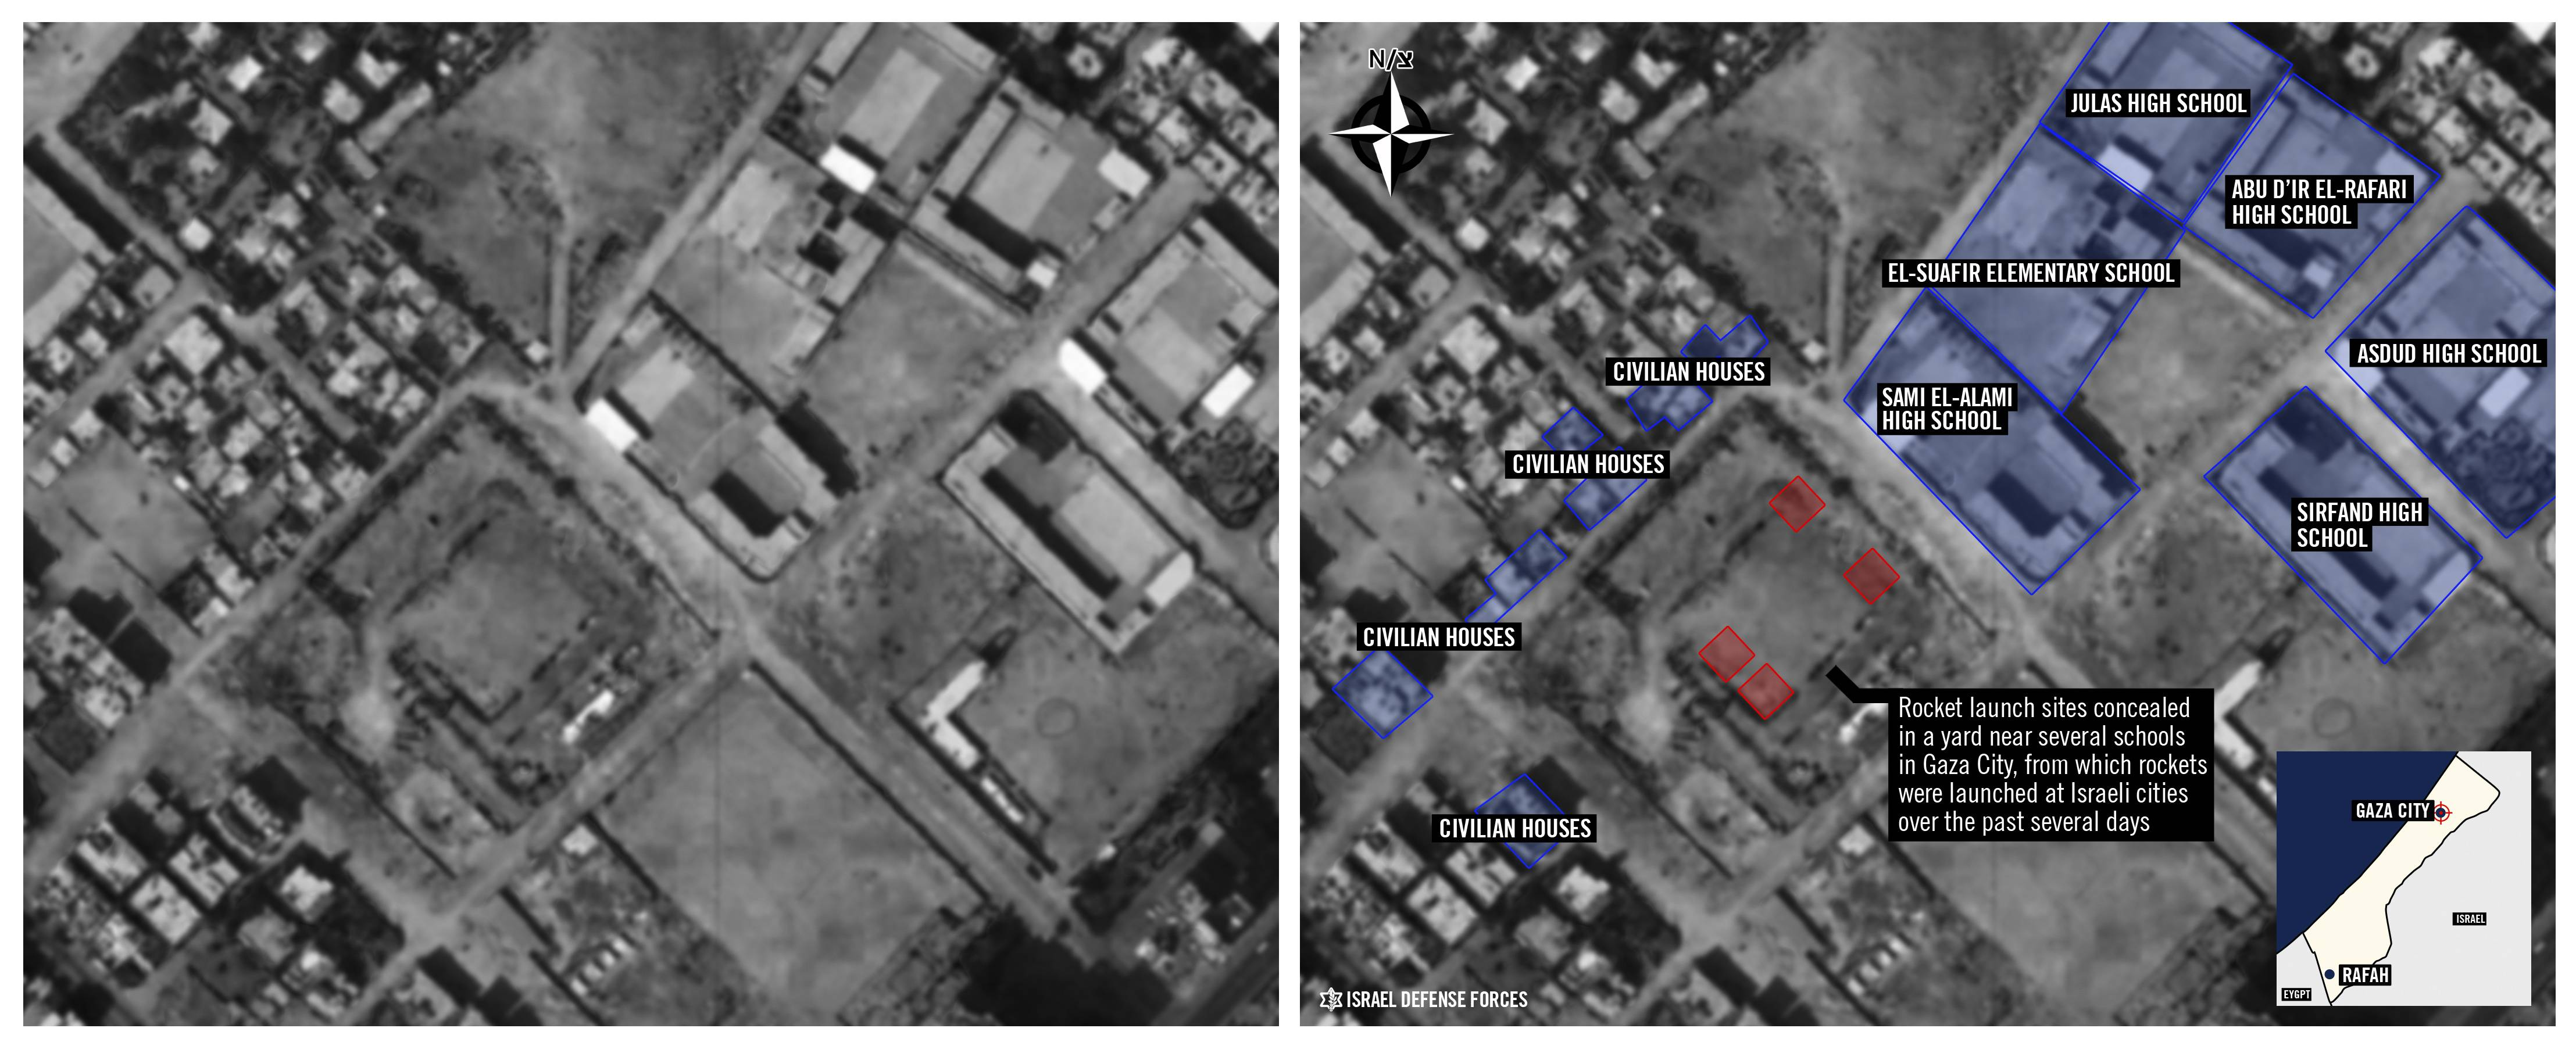 Evidence growing that Hamas used residential areas as cover